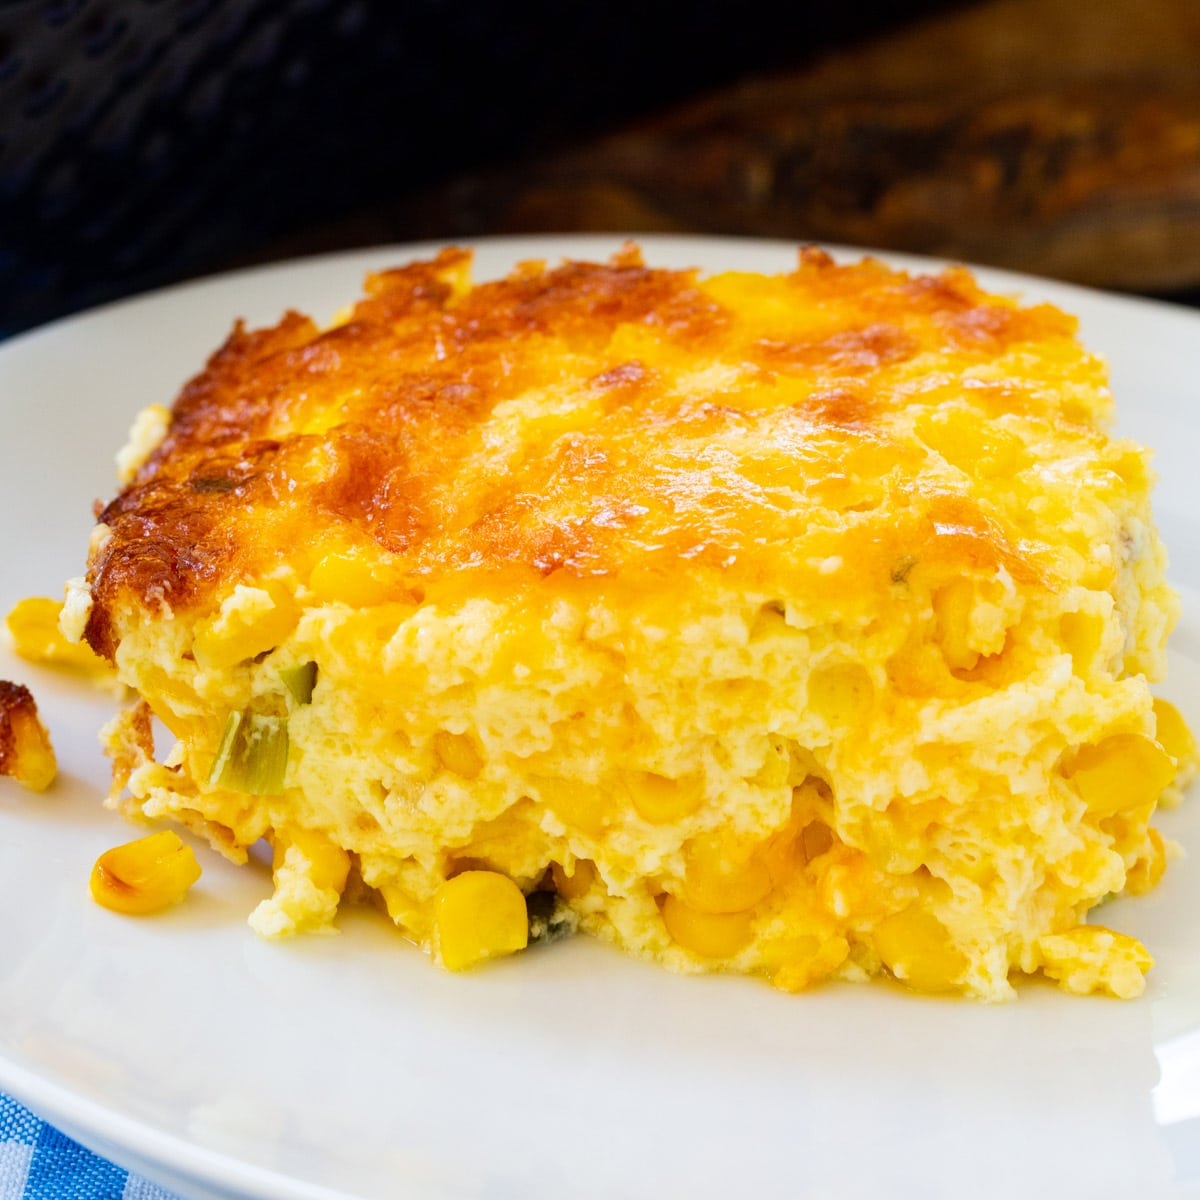 Three Cheese Corn Pudding on a plate.